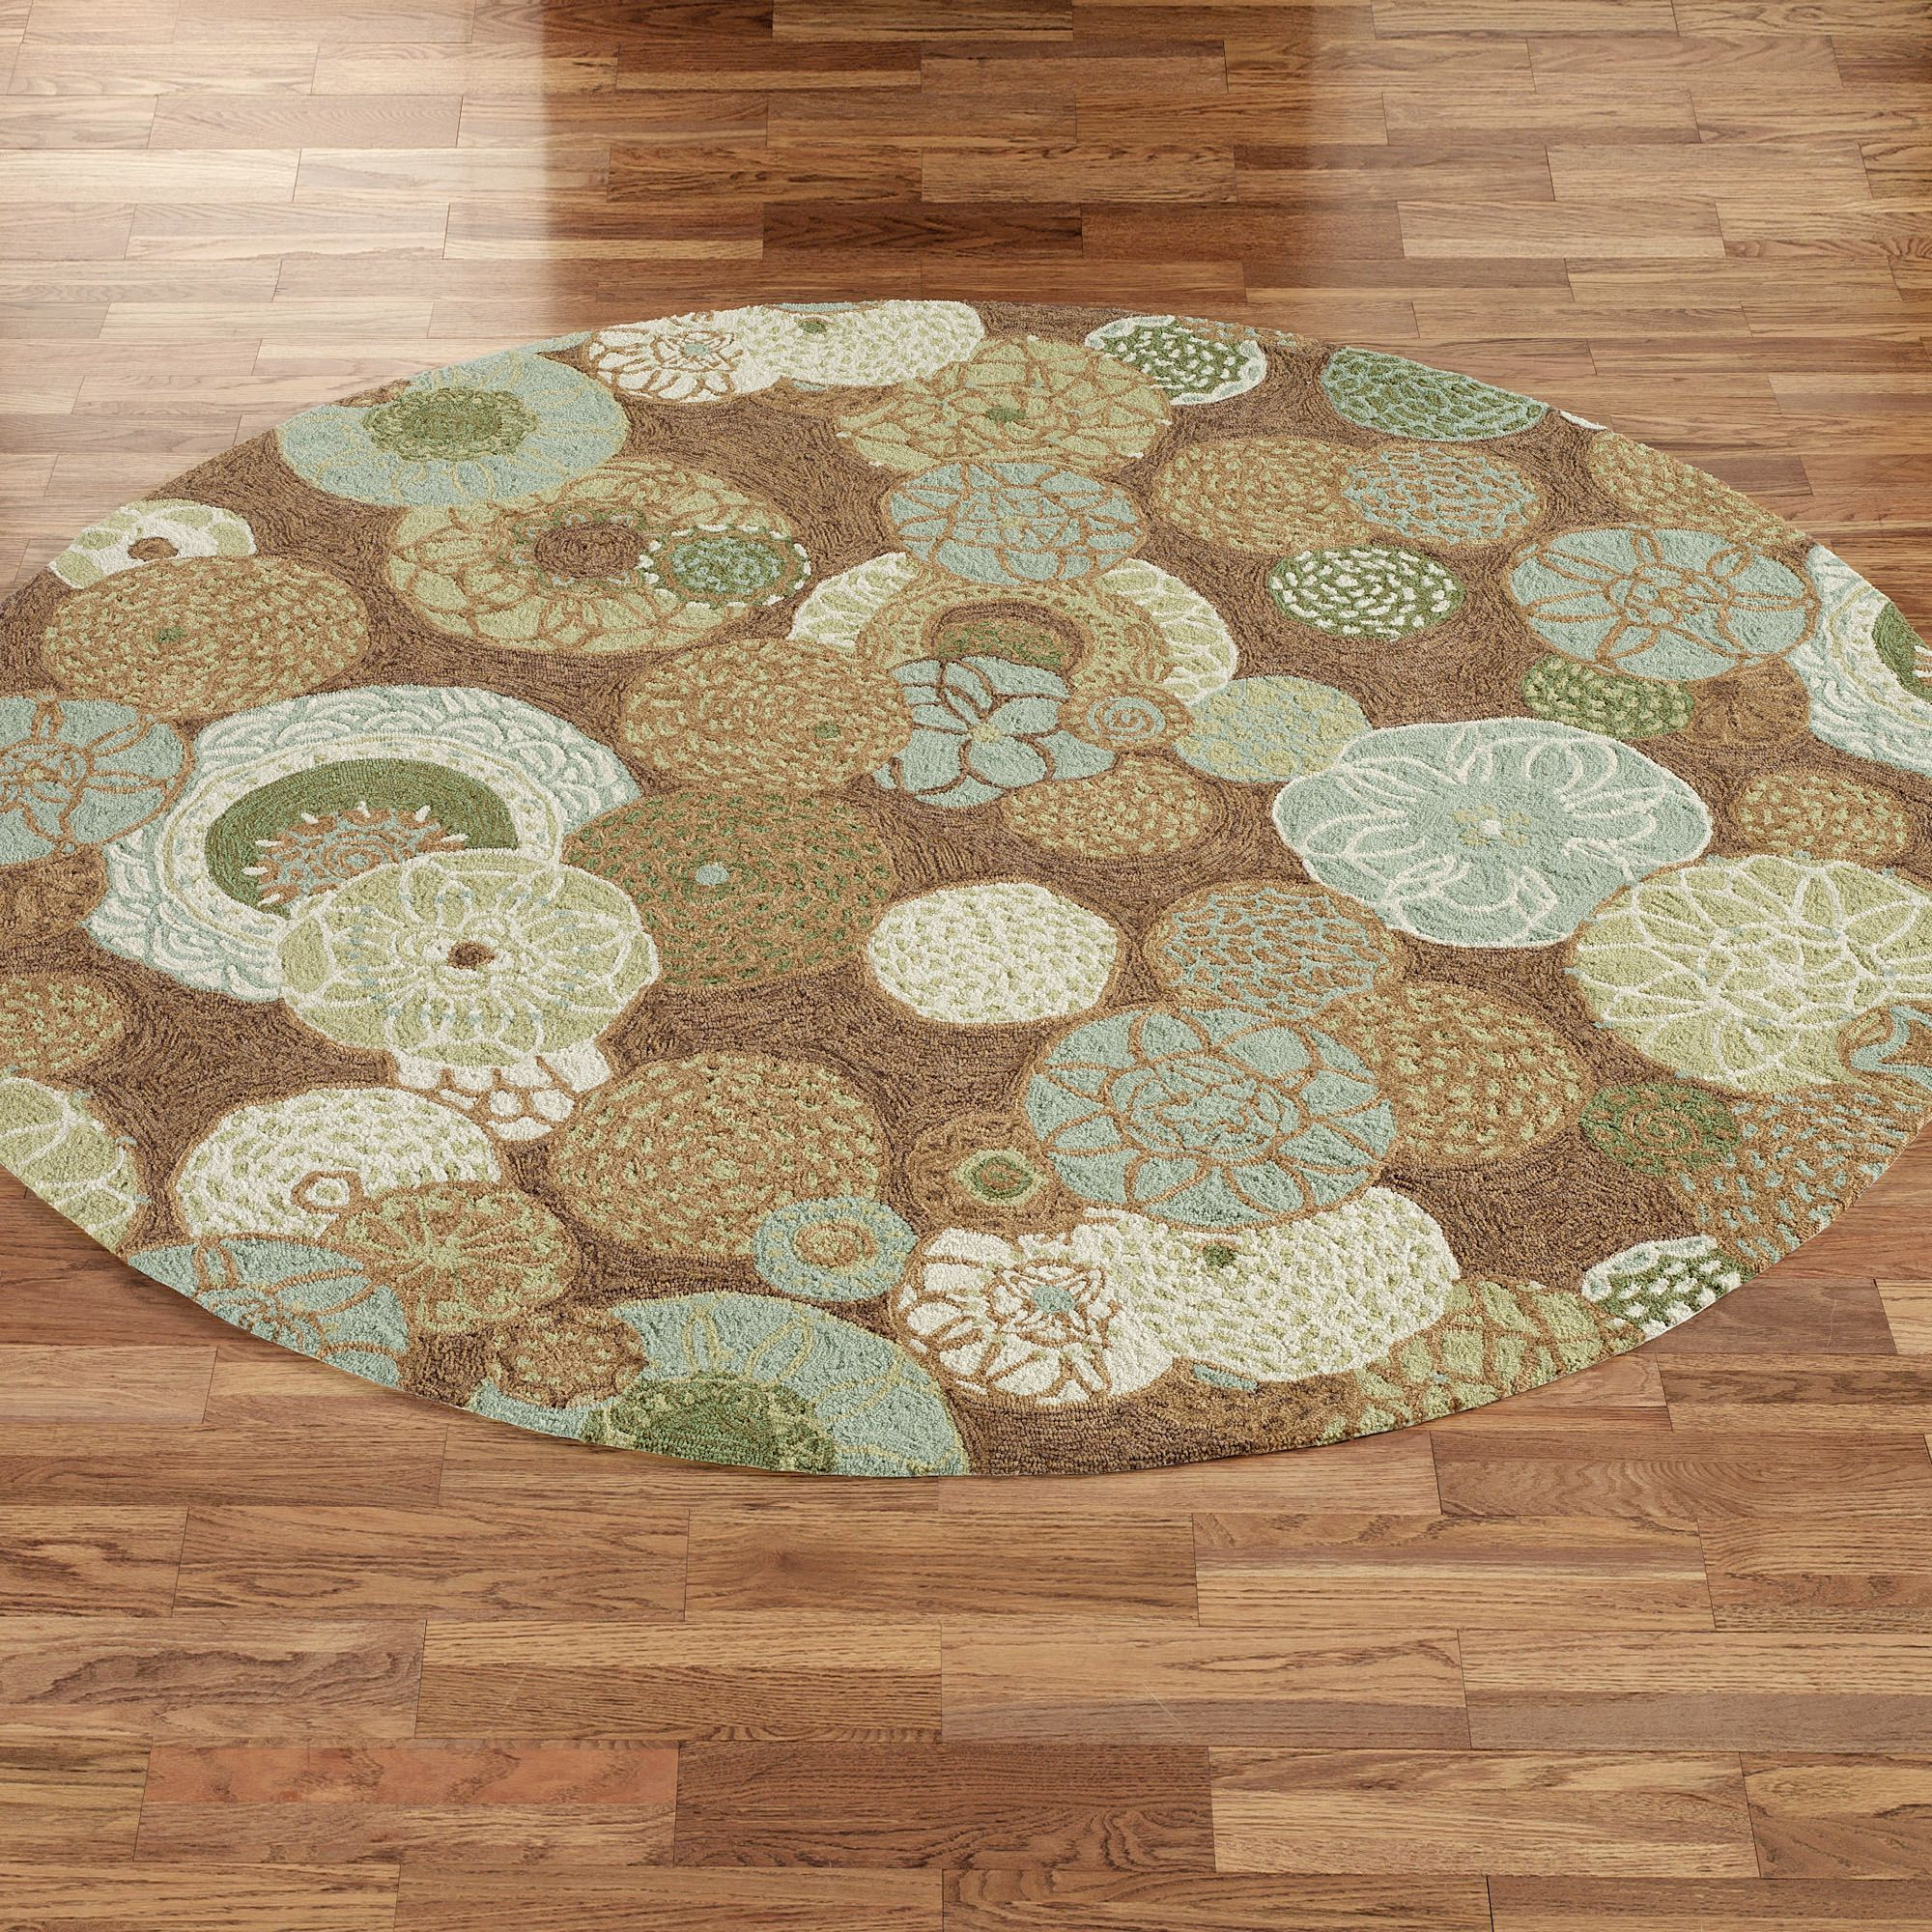 Image of: Round Indoor Outdoor Rugs Style | Round Outdoor Rugs ...